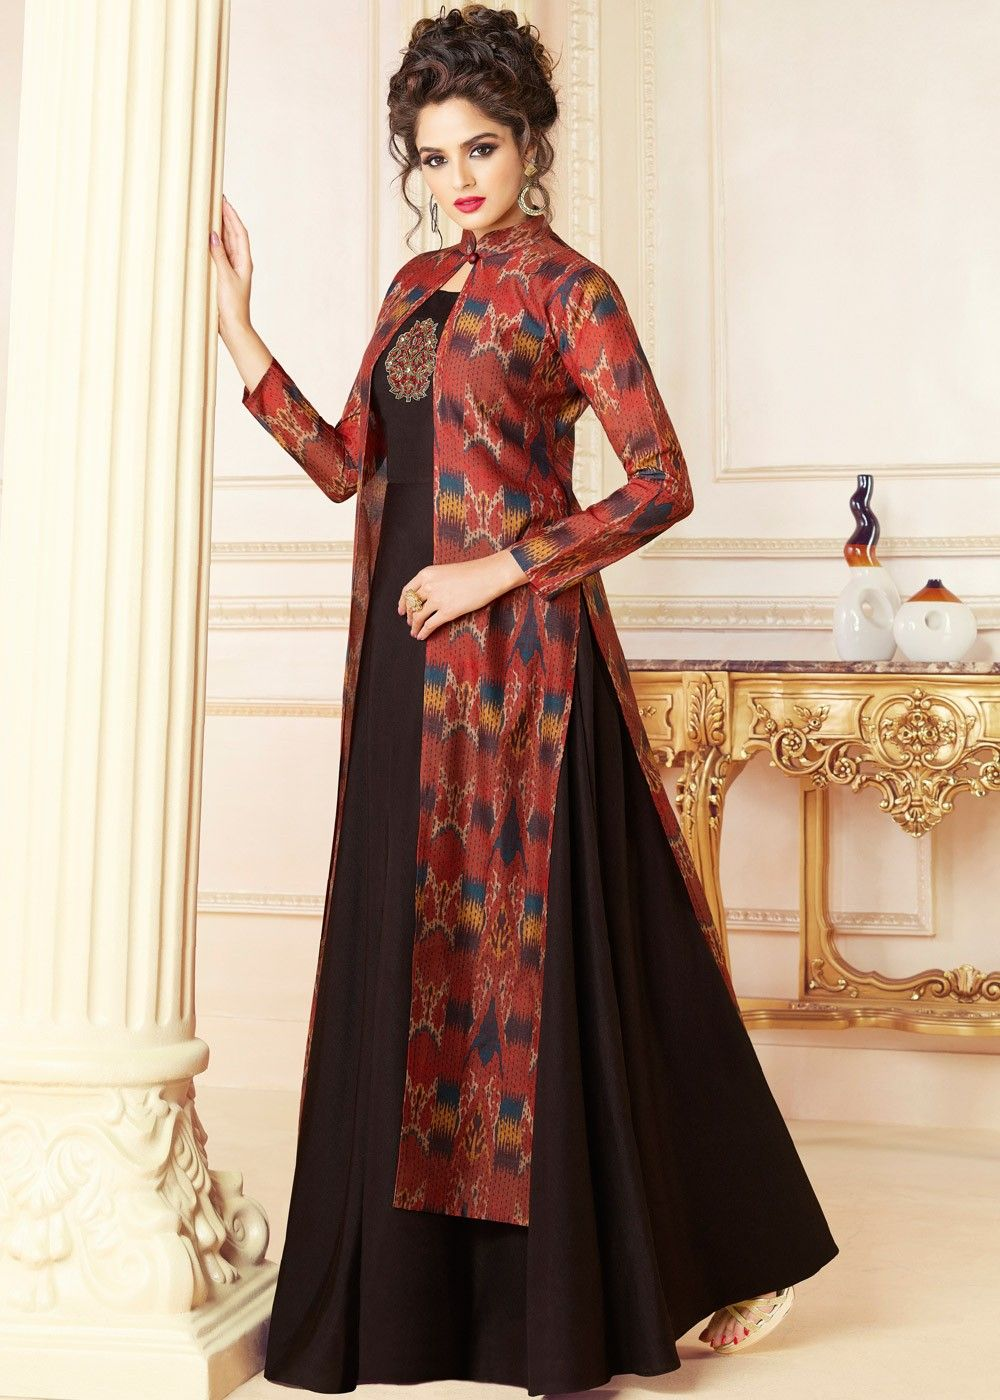 9b93f9d9d839 Black Indo Western Maxi Dress With Jacket in 2019 | Fashion | Jacket ...